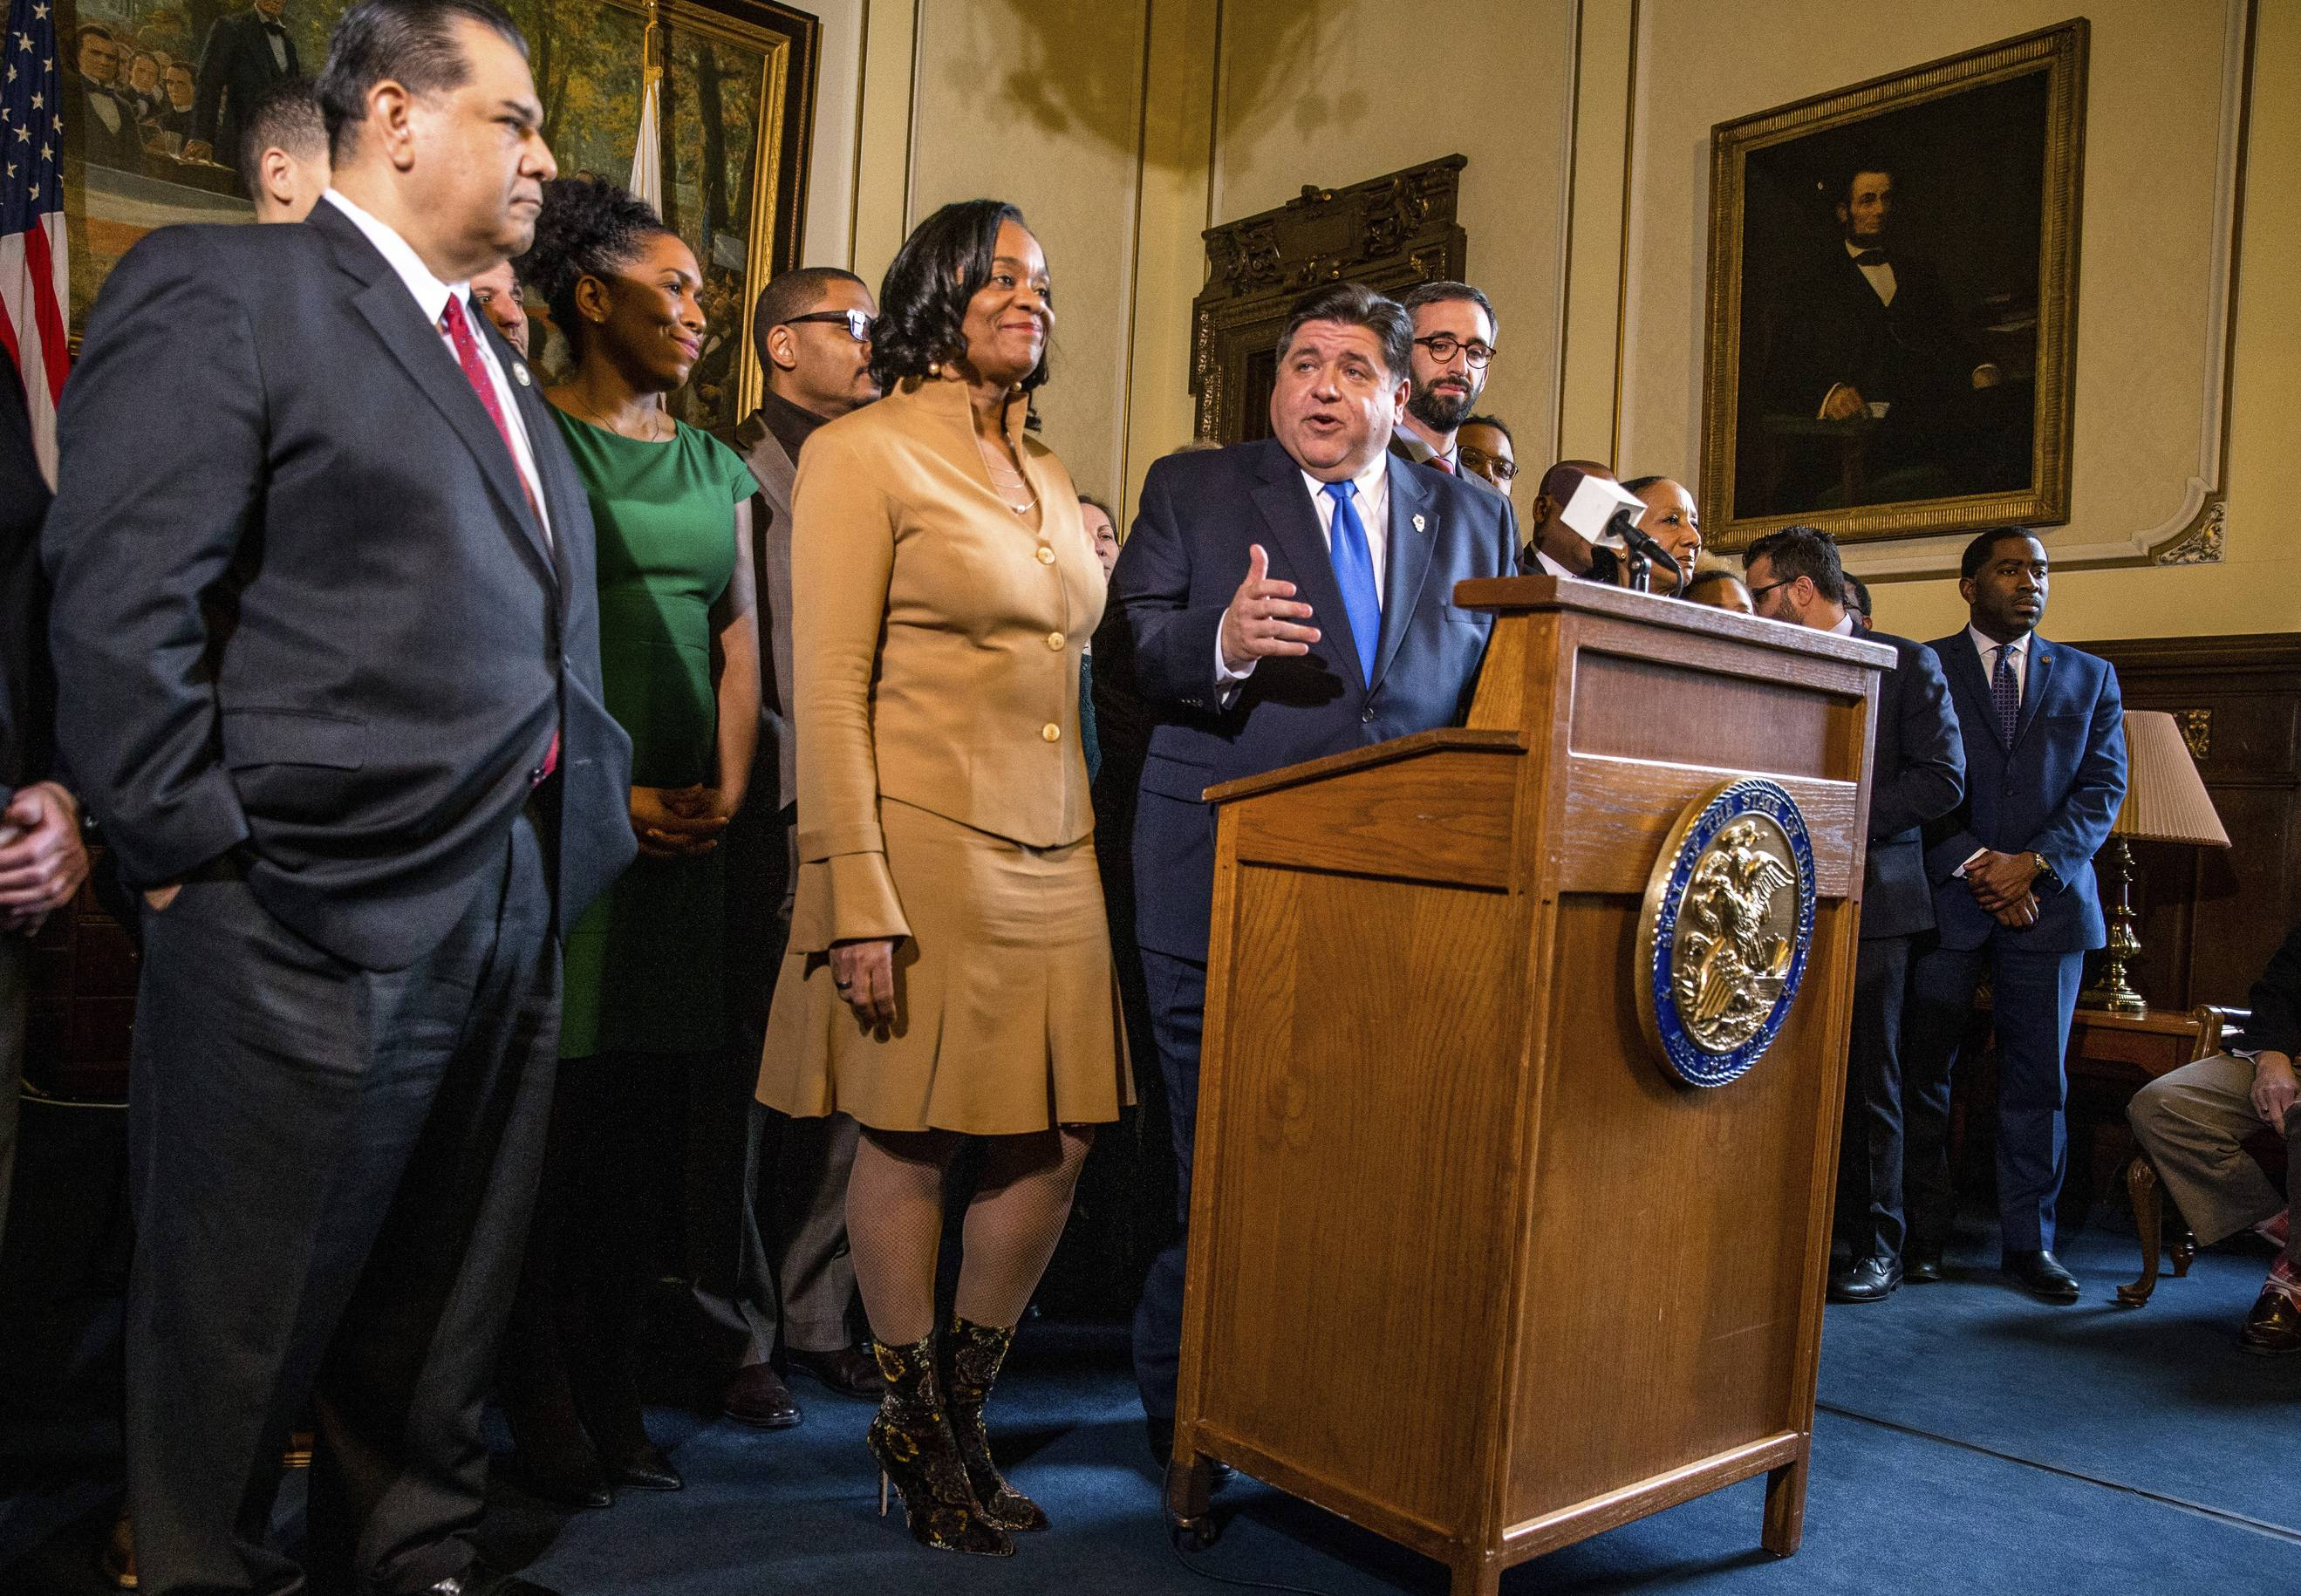 Illinois Gov. J.B. Pritzker gives his opening remarks along with Illinois State Sen. Kimberly Lightford, D-Maywood, left, on Senate Bill 1, a bill sponsored by Lightford to raise the state's minimum wage to $15 an hour by 2025, after it passed the Illinois Senate during a news conference in the governor's office at the Illinois state Capitol, Thursday in Springfield.